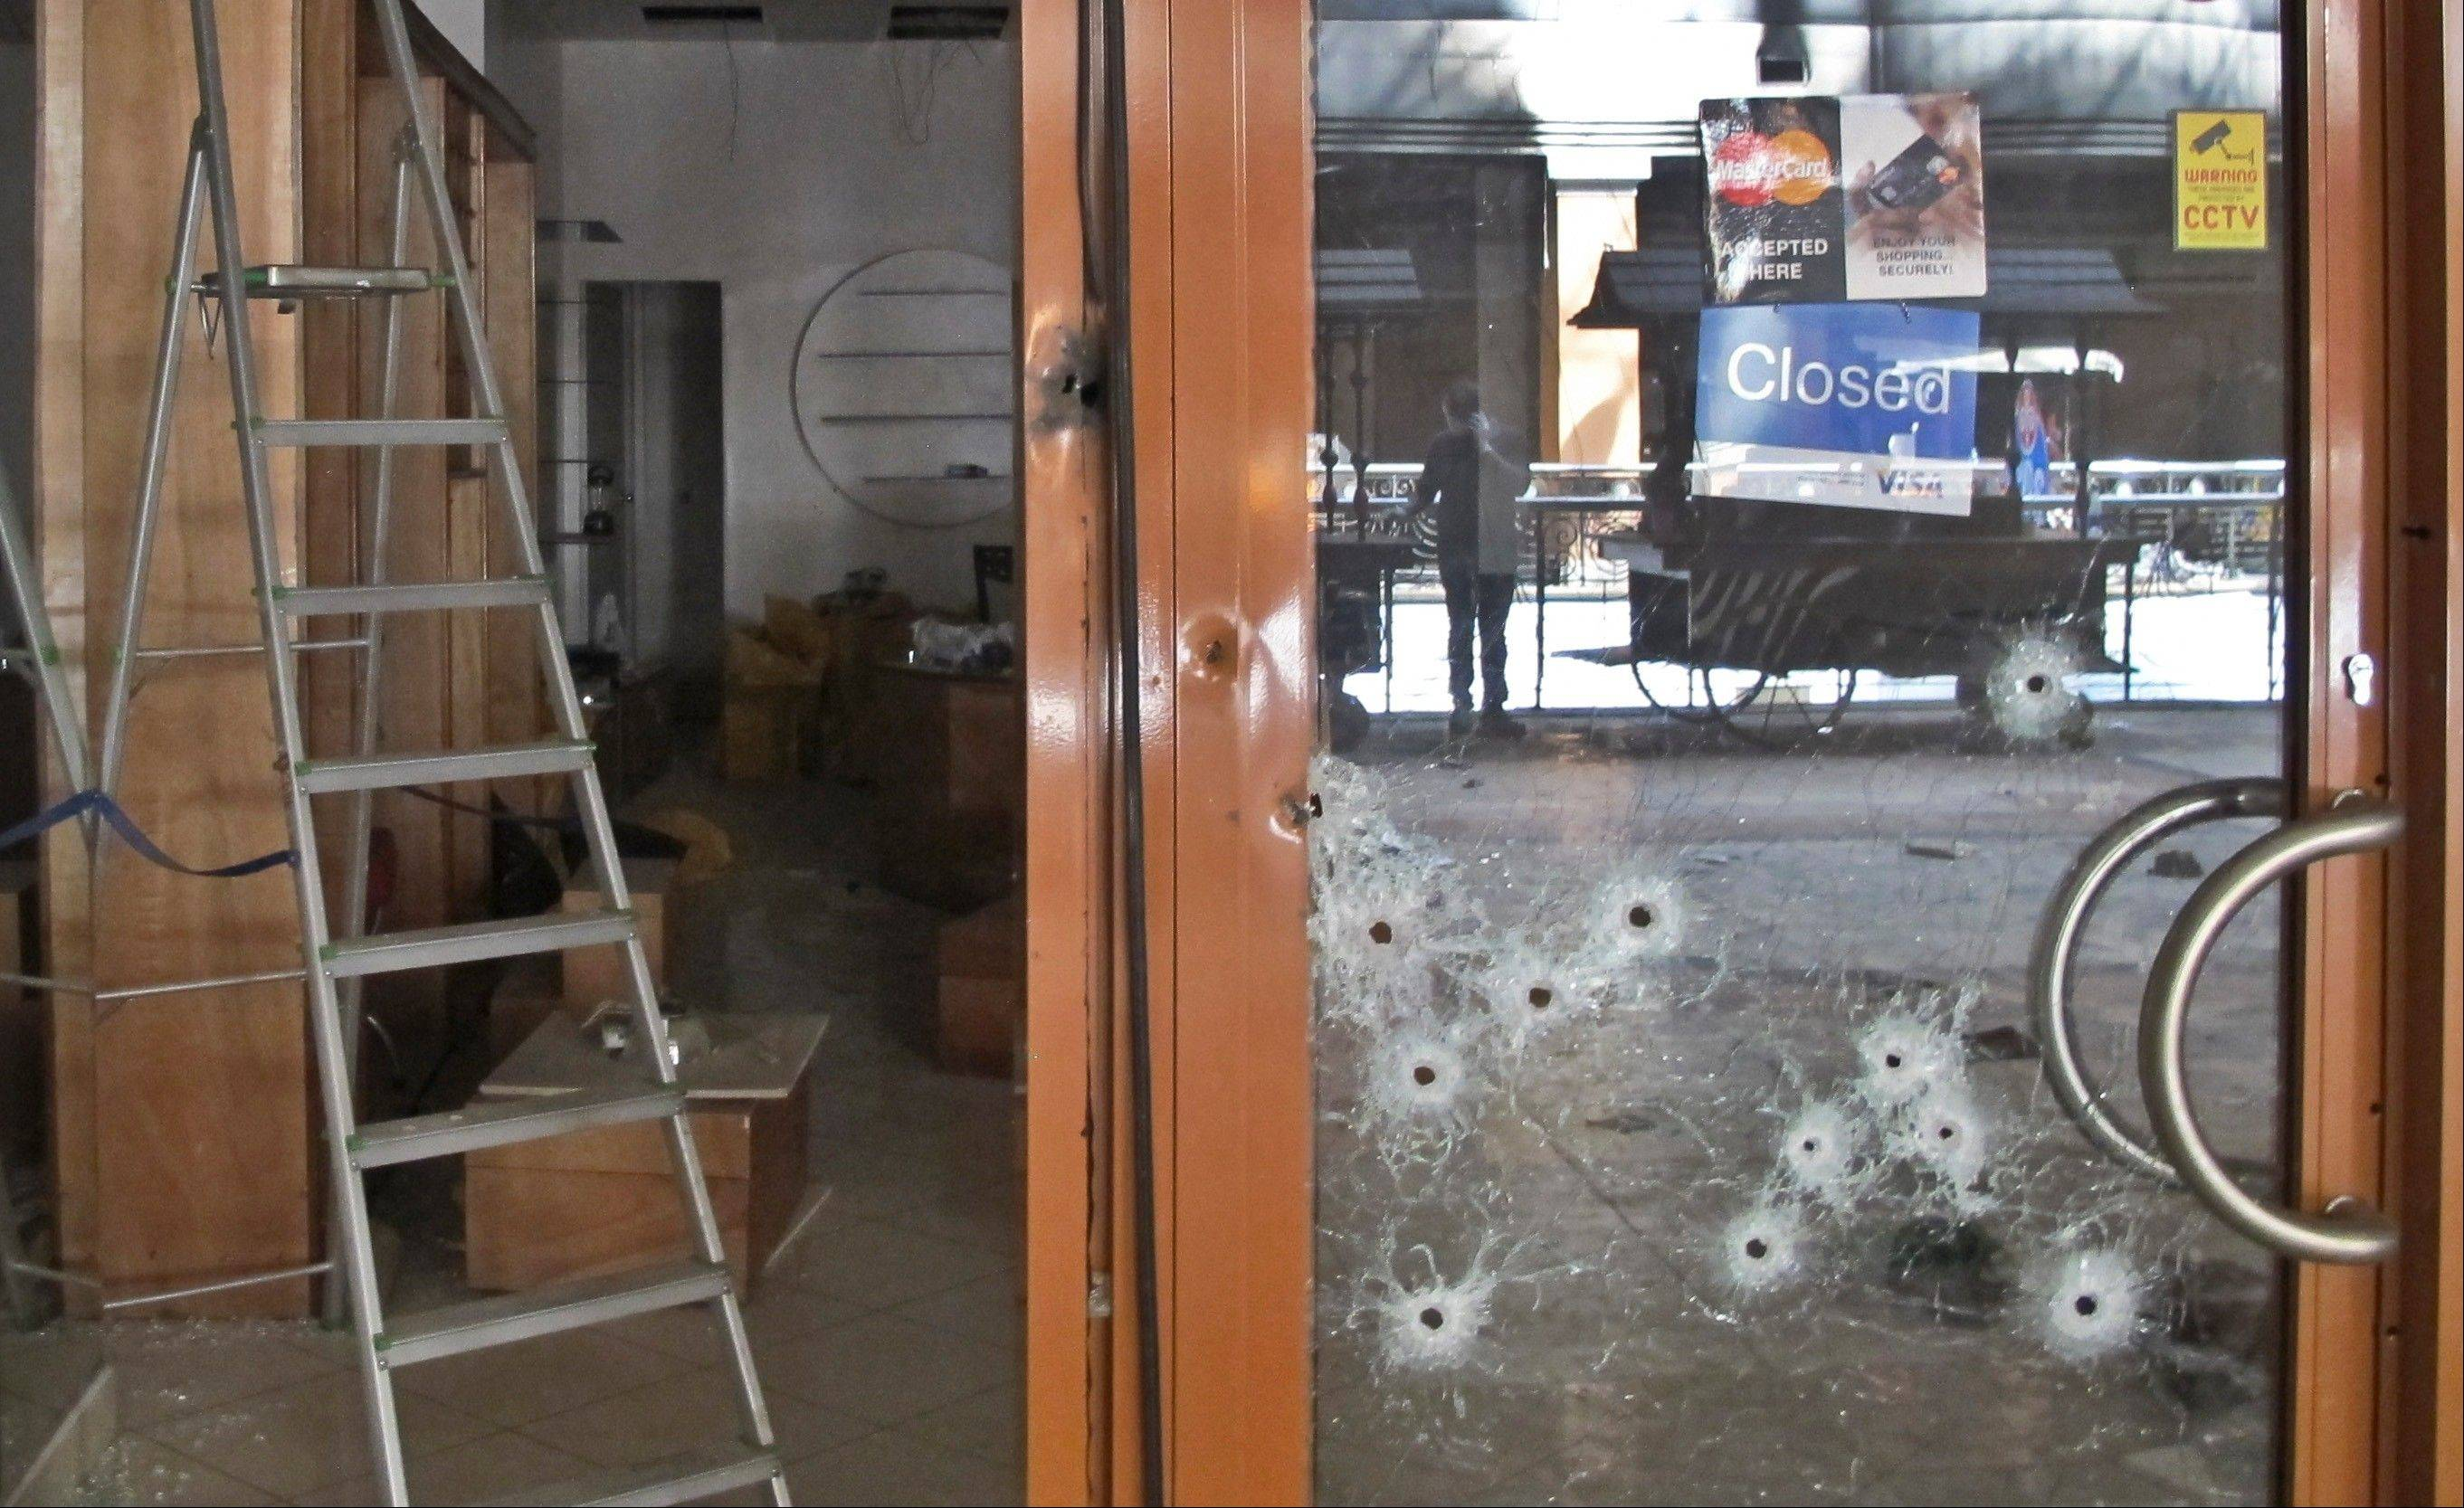 Bullet-holes pepper the glass door of a shop in the Westgate Mall in Nairobi, Kenya Tuesday, Oct. 1, 2013. Kenyan President Uhuru Kenyatta says Kenya will keep its troops in Somalia to help that country's beleaguered government battle the armed Islamic extremist group al-Shabab, which attacked the mall in Nairobi on Sept. 21 claiming at least 67 lives.